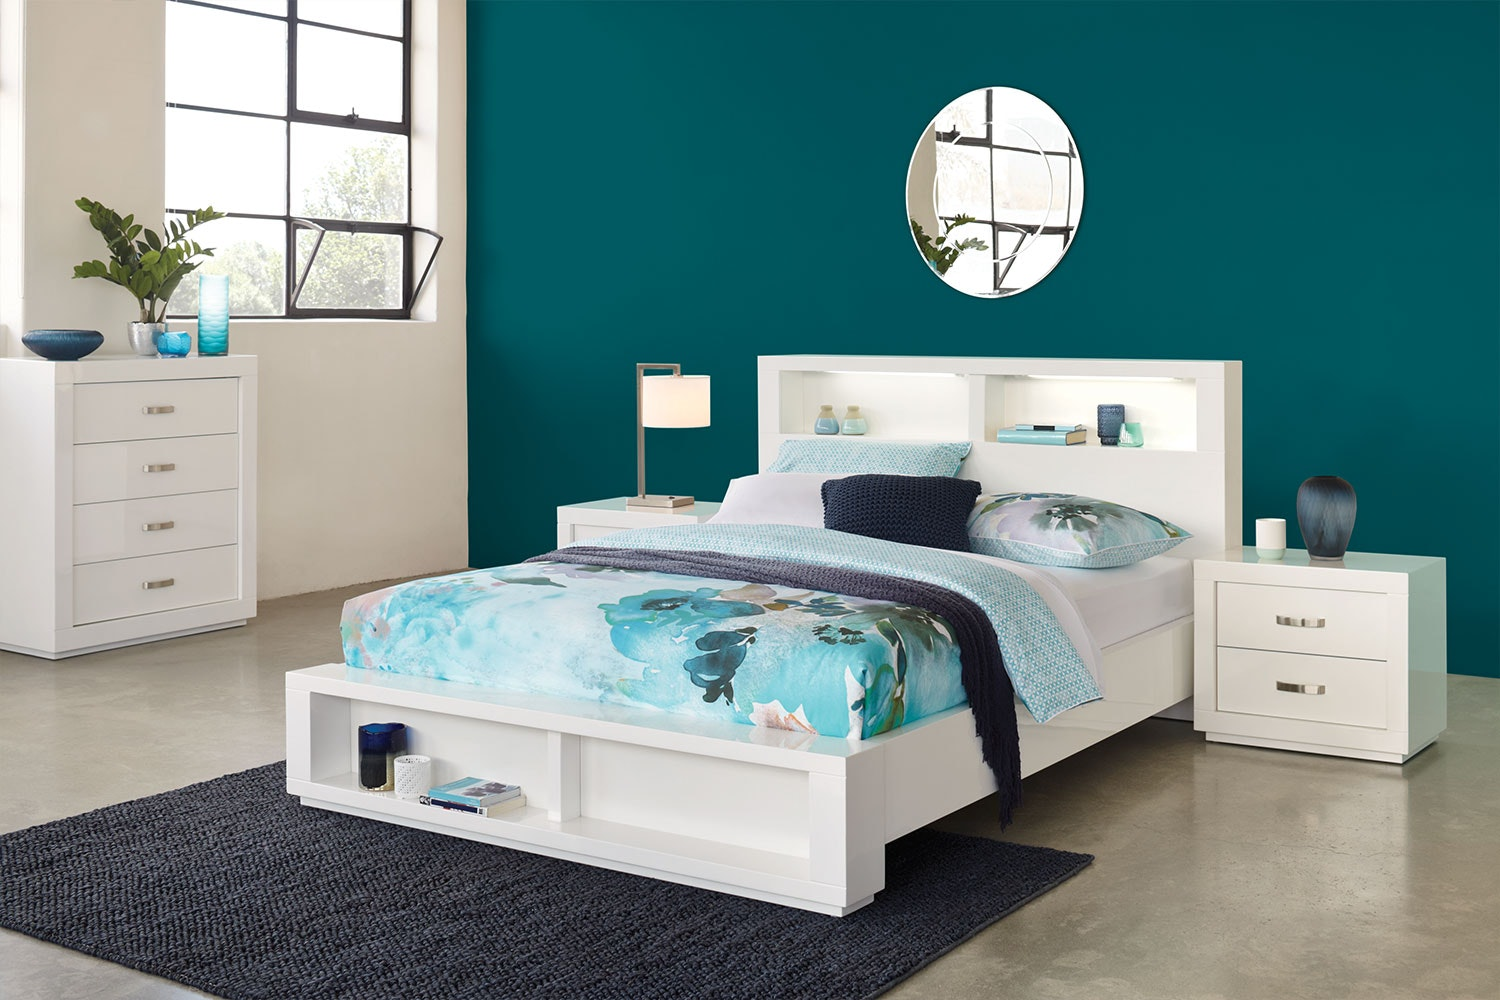 Summit Bedroom Furniture by Stoke Furniture